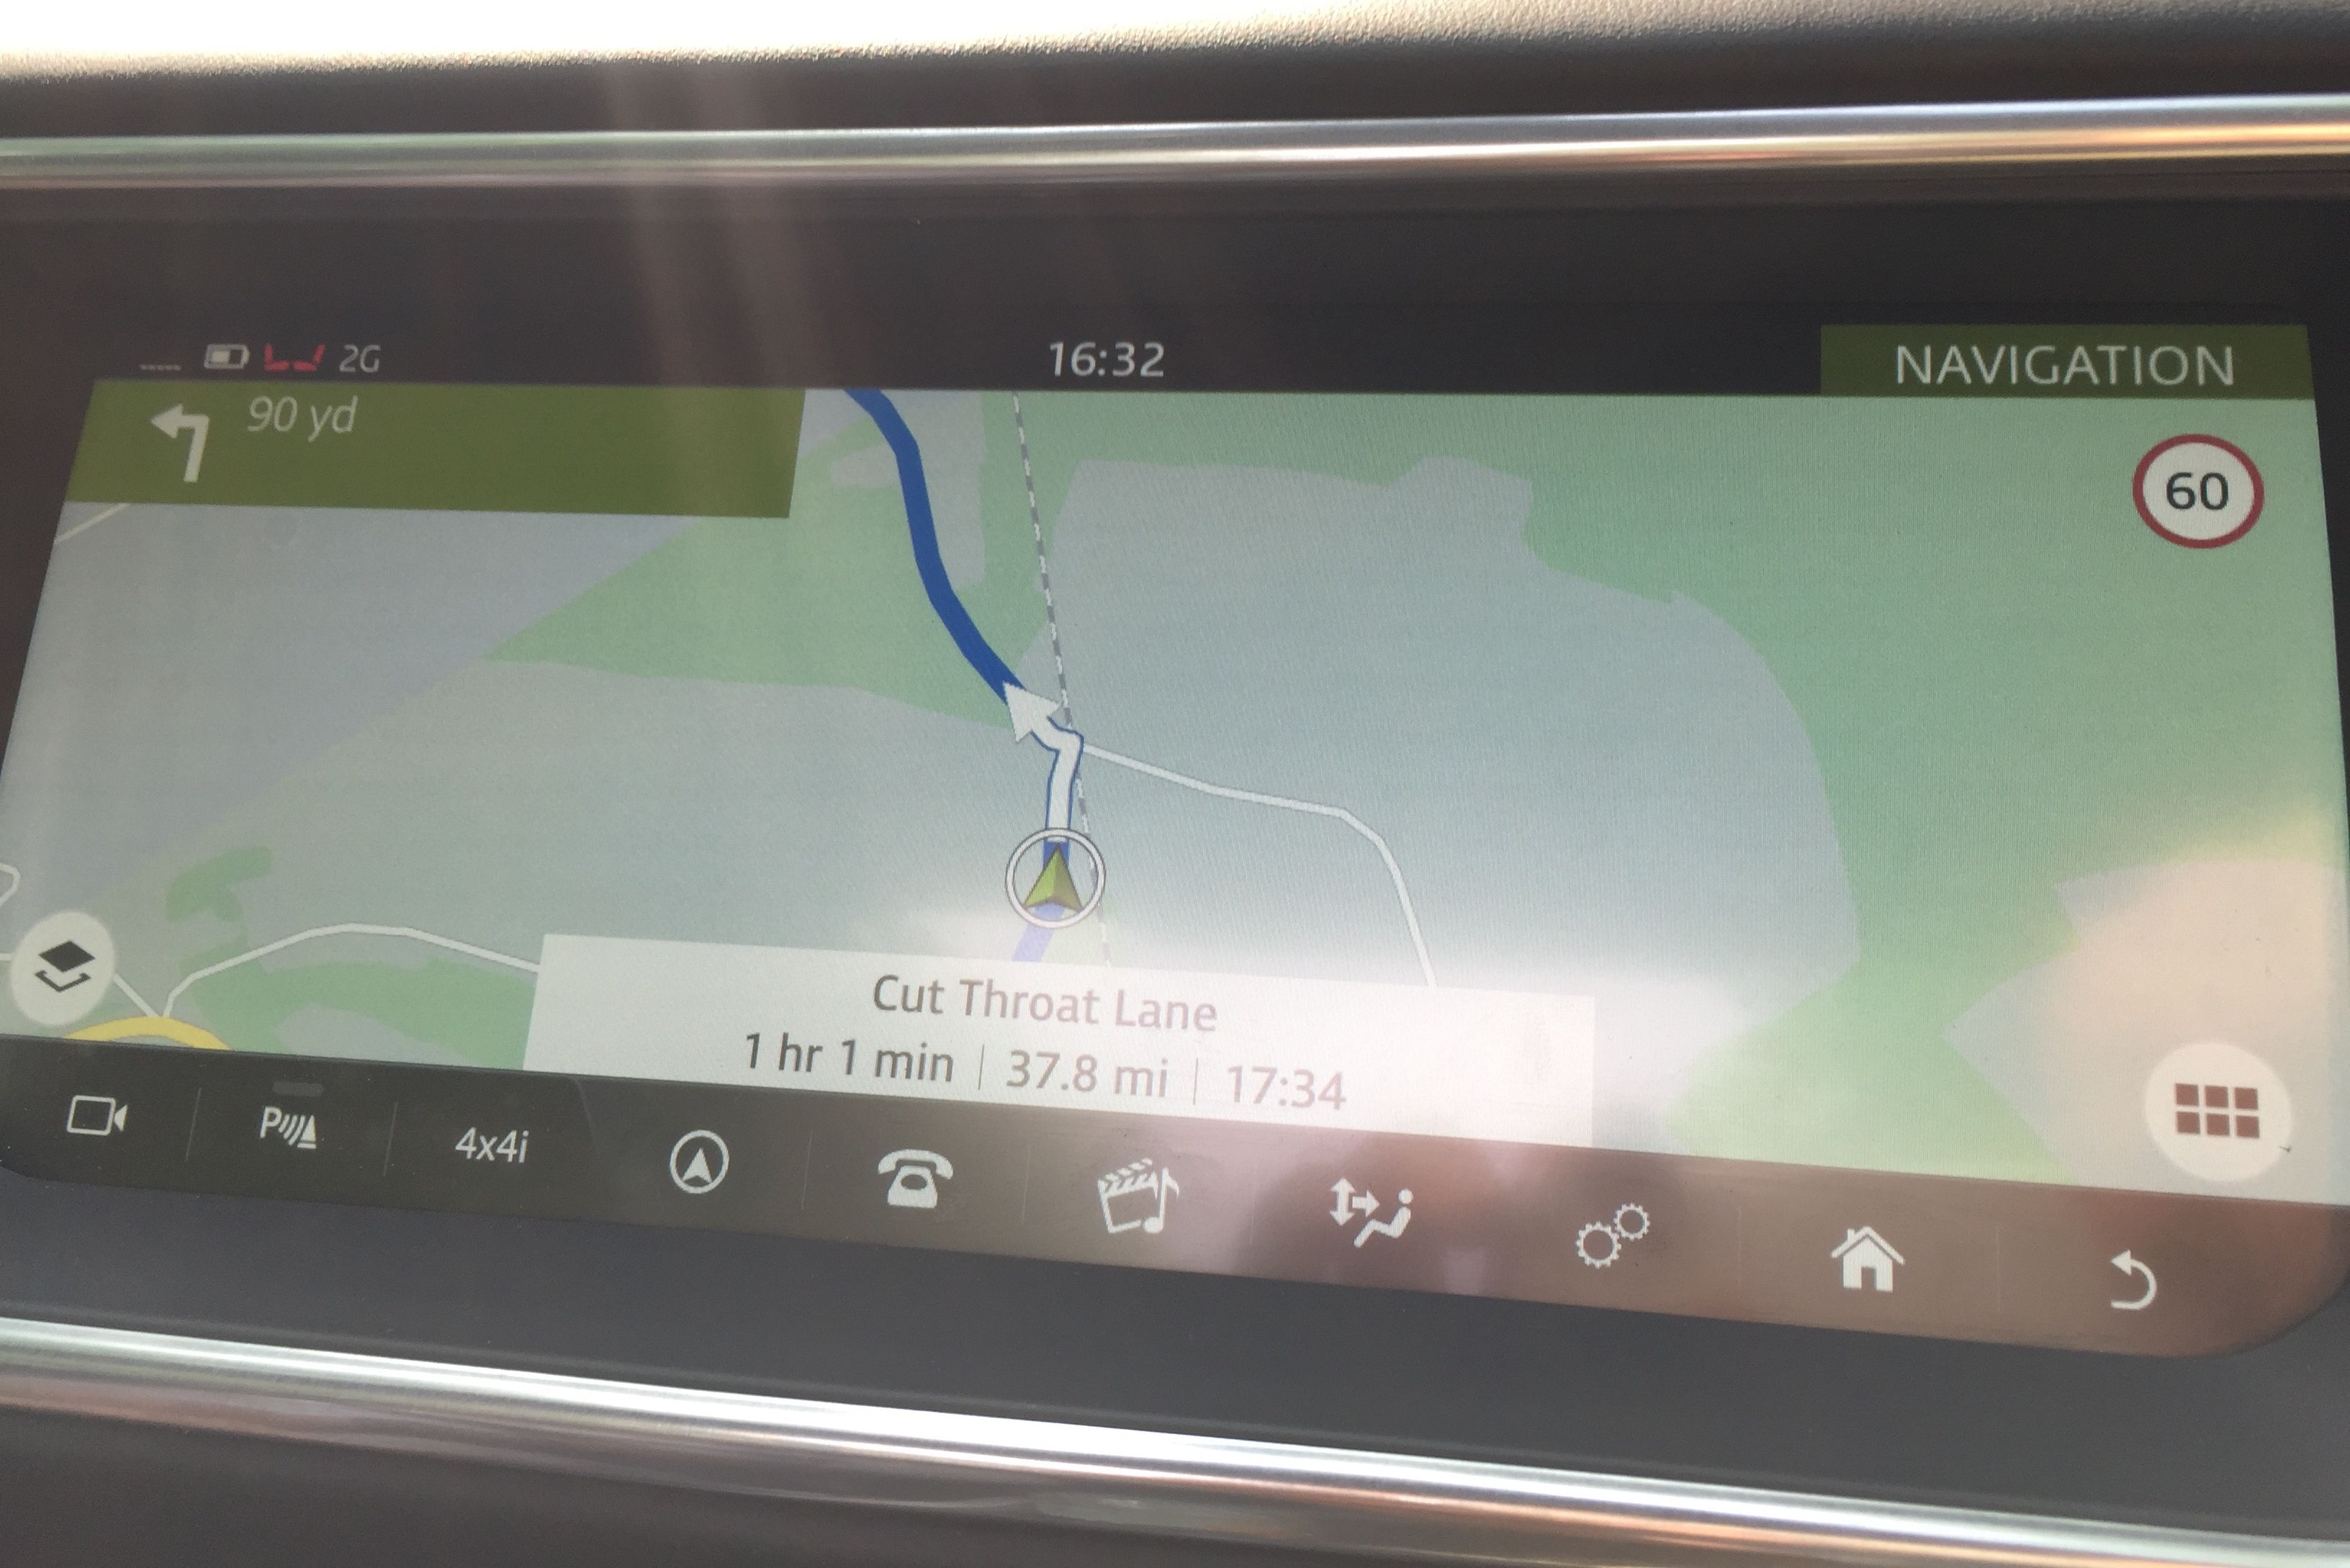 The 10.2-inch InControl screen. I mostly took this photo because I liked the name of the road.